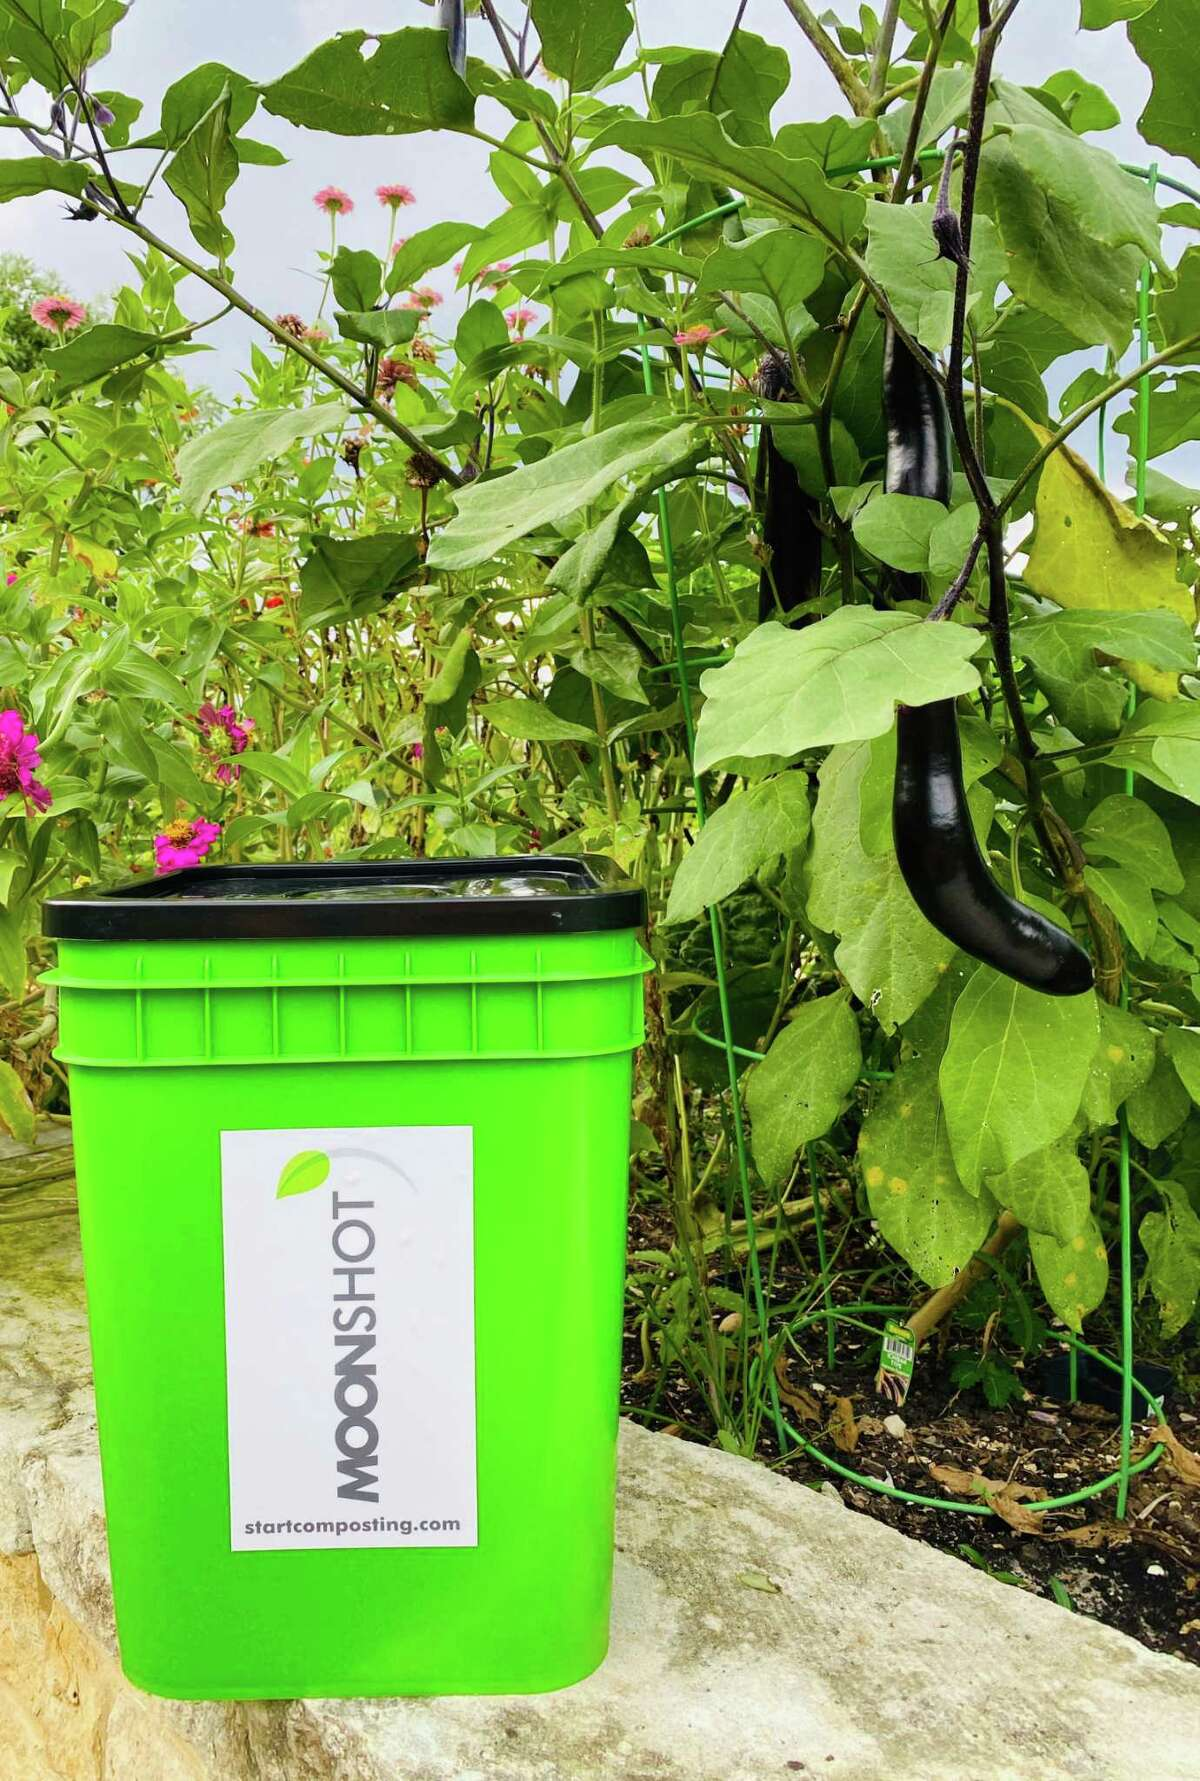 Moonshot Compost takes food waste from residential and commercial clients, brings it to an industrial composting facility, then returns the compost to their clients.